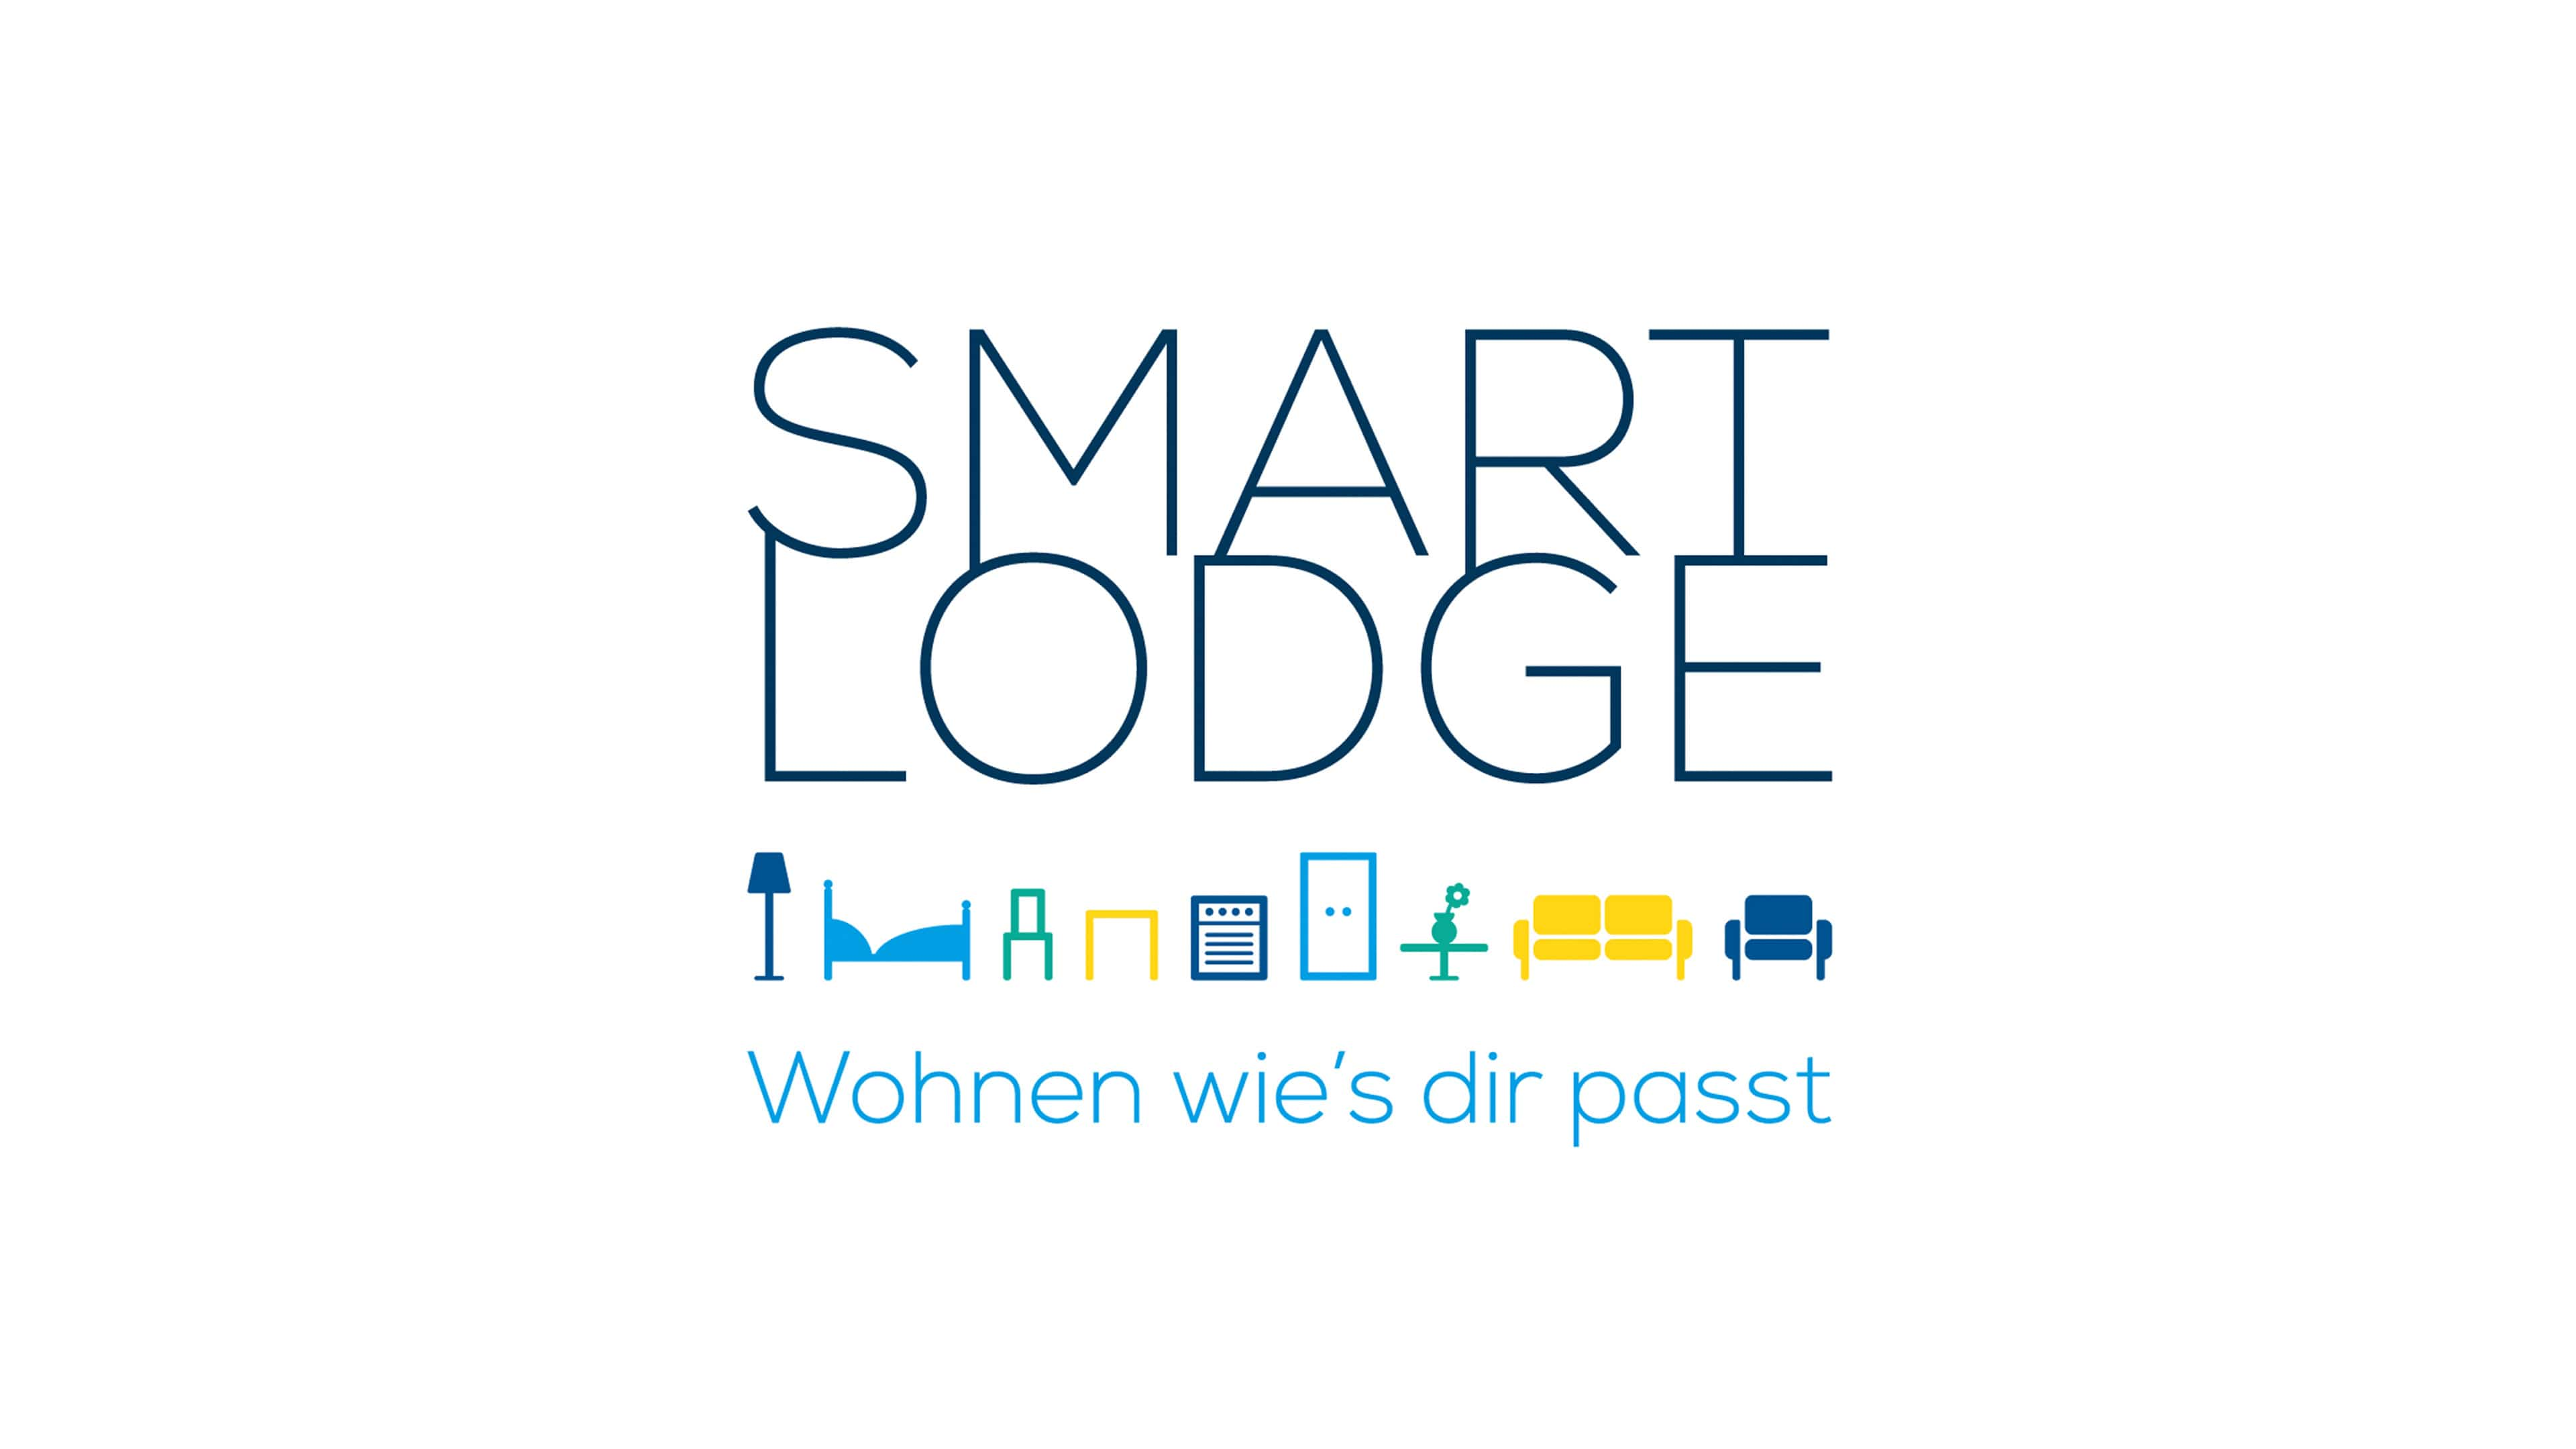 hochzwei_smartlodge_head_01.jpg